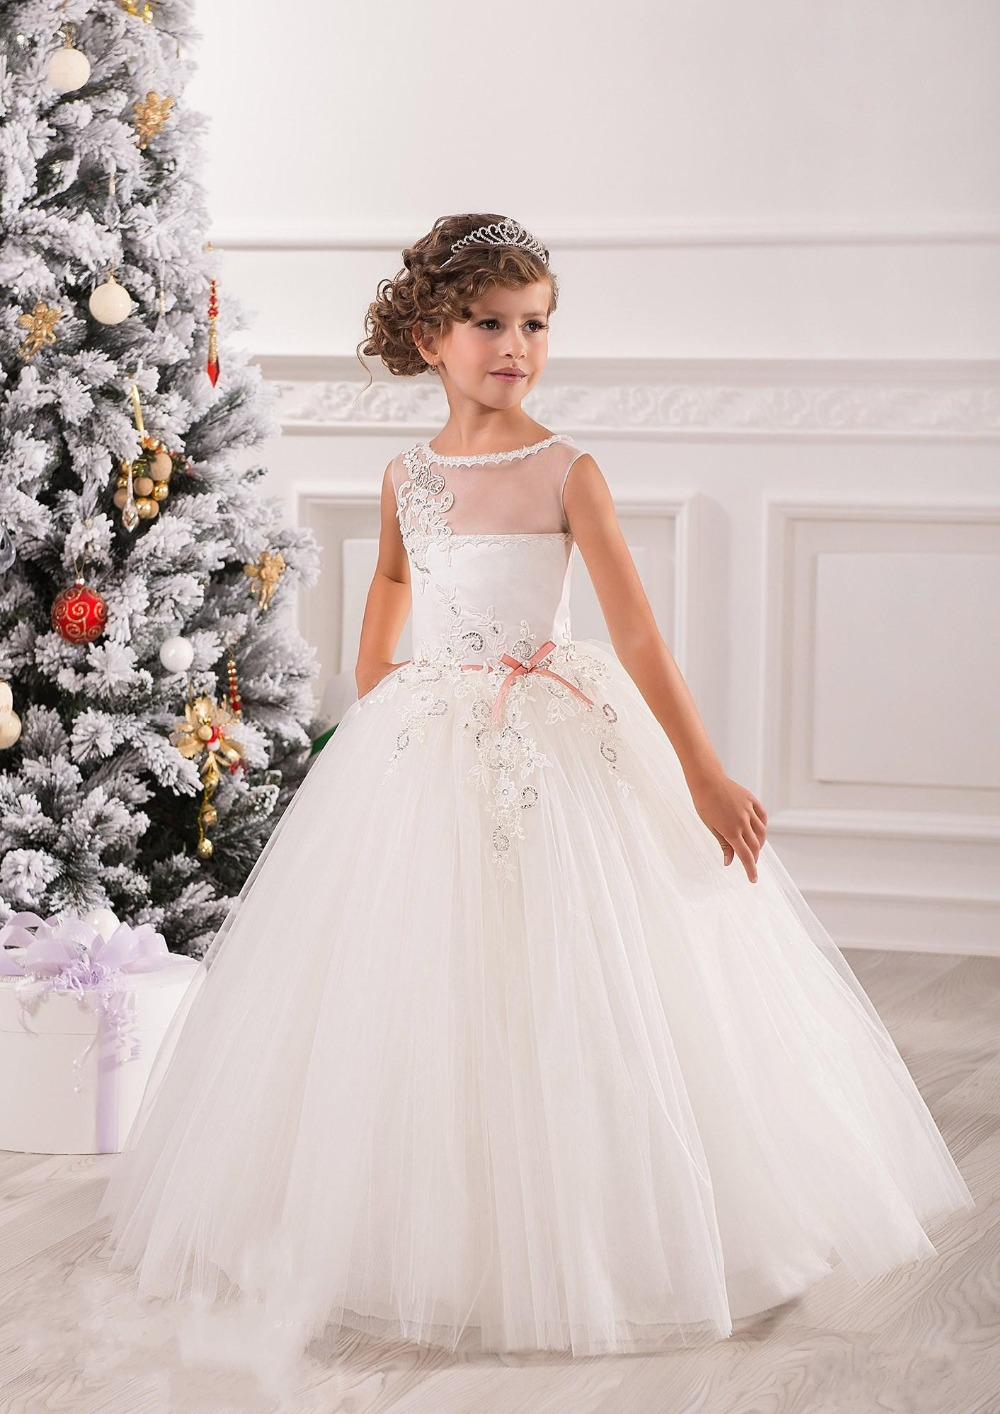 Elegant white lace ball gowns tulle flower girl dresses for Dresses for girls wedding